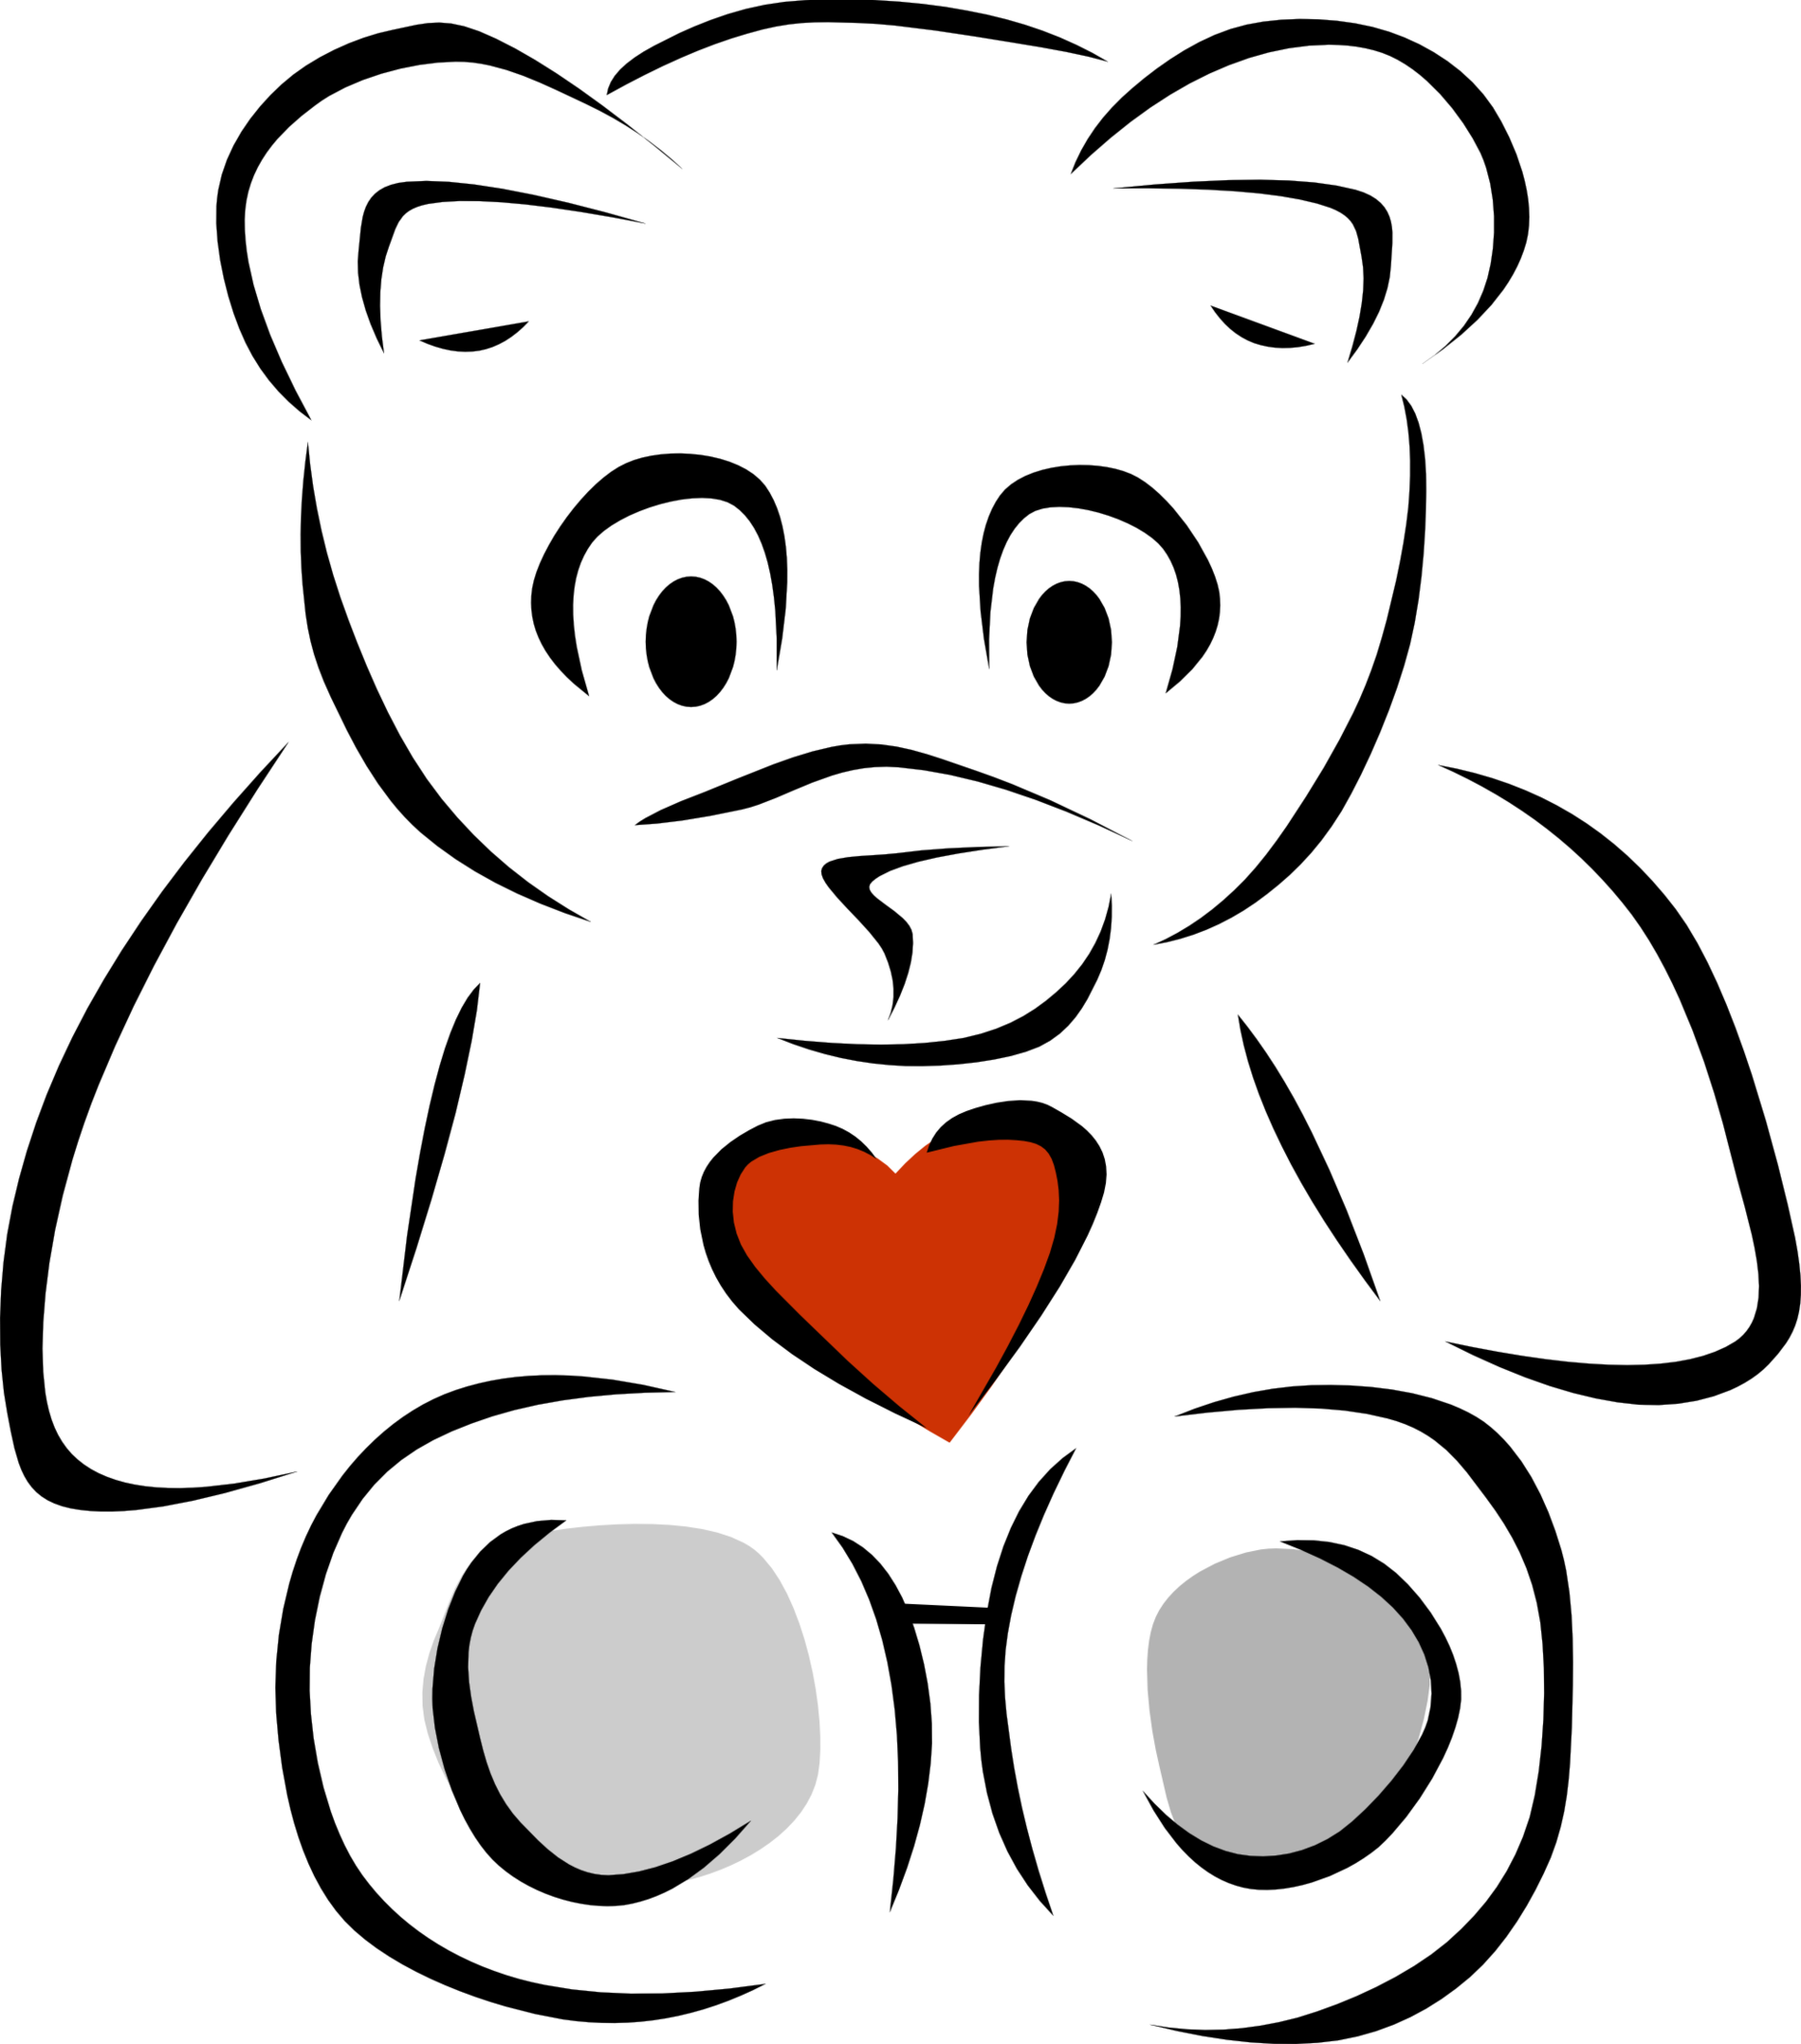 Teddy bear  black and white black and white pictures of bears clipart free to use clip art